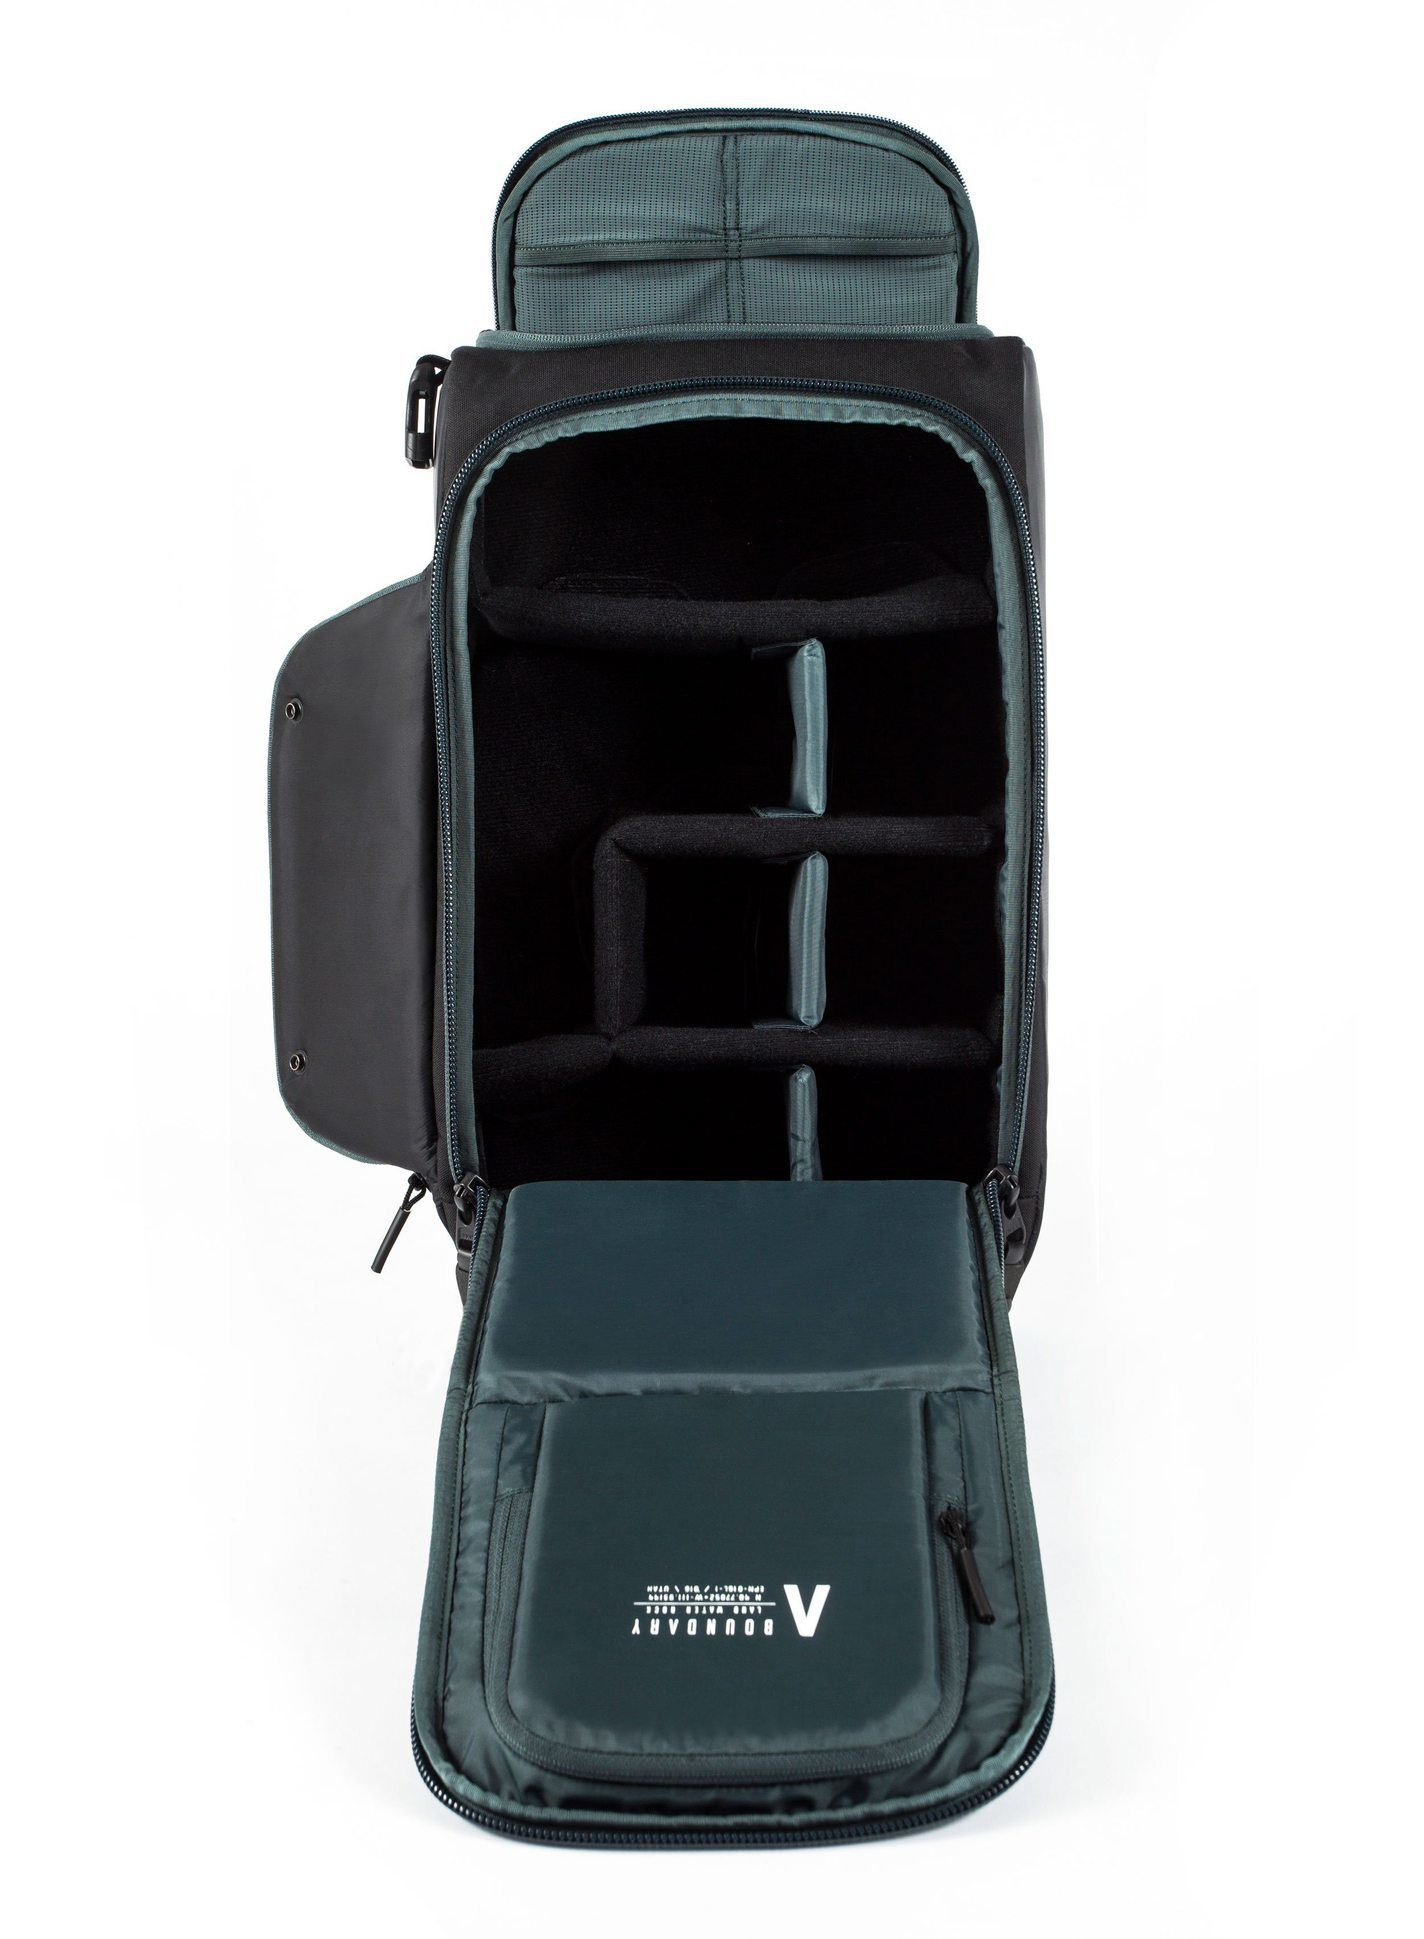 camera case for prima system boundary supply backpack review